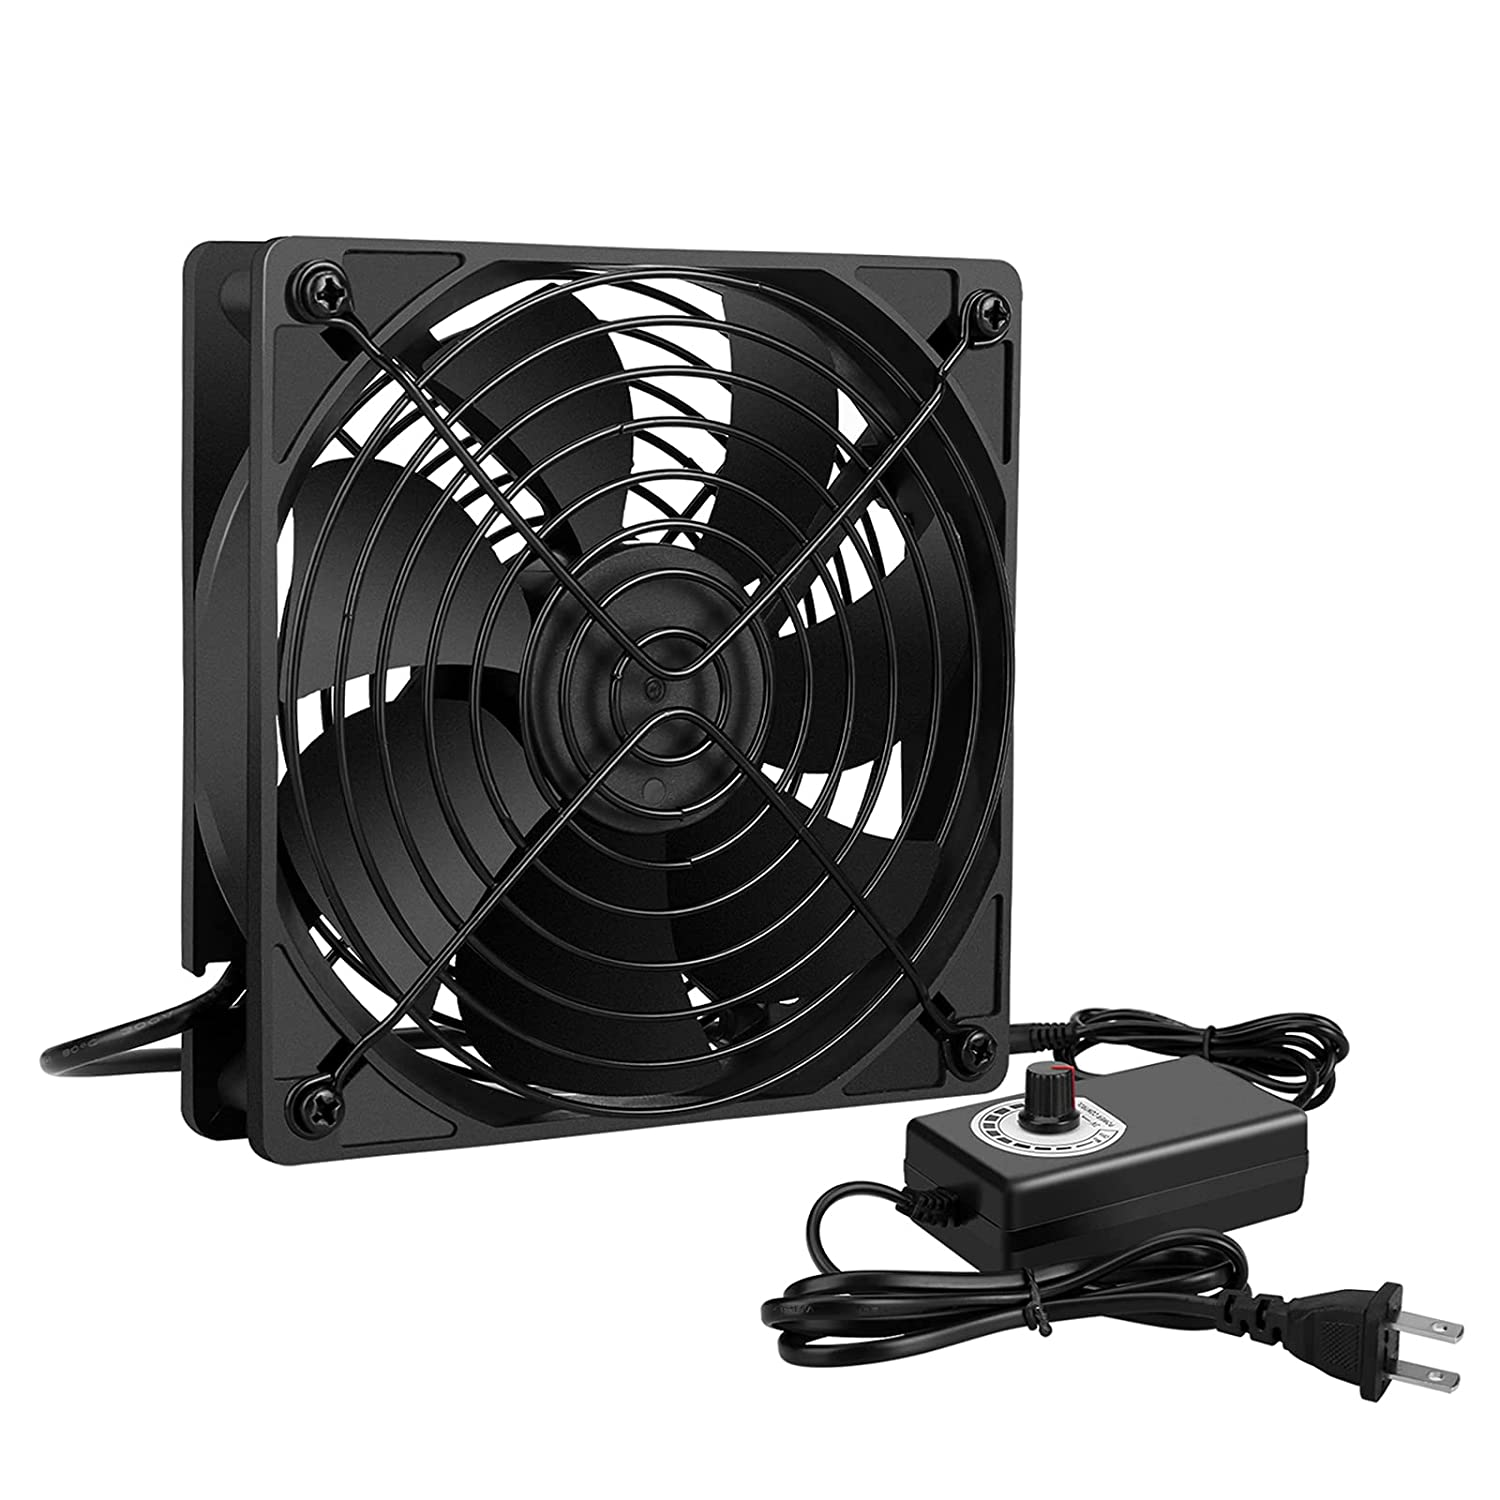 Qirssyn 120mm AC Powered Fan Variable Speed Controller, Strong Airflow AC 110V to 220V for Receiver LED Lights Amplifier Biltong Box Xbox DVR Playstation Component Cooling